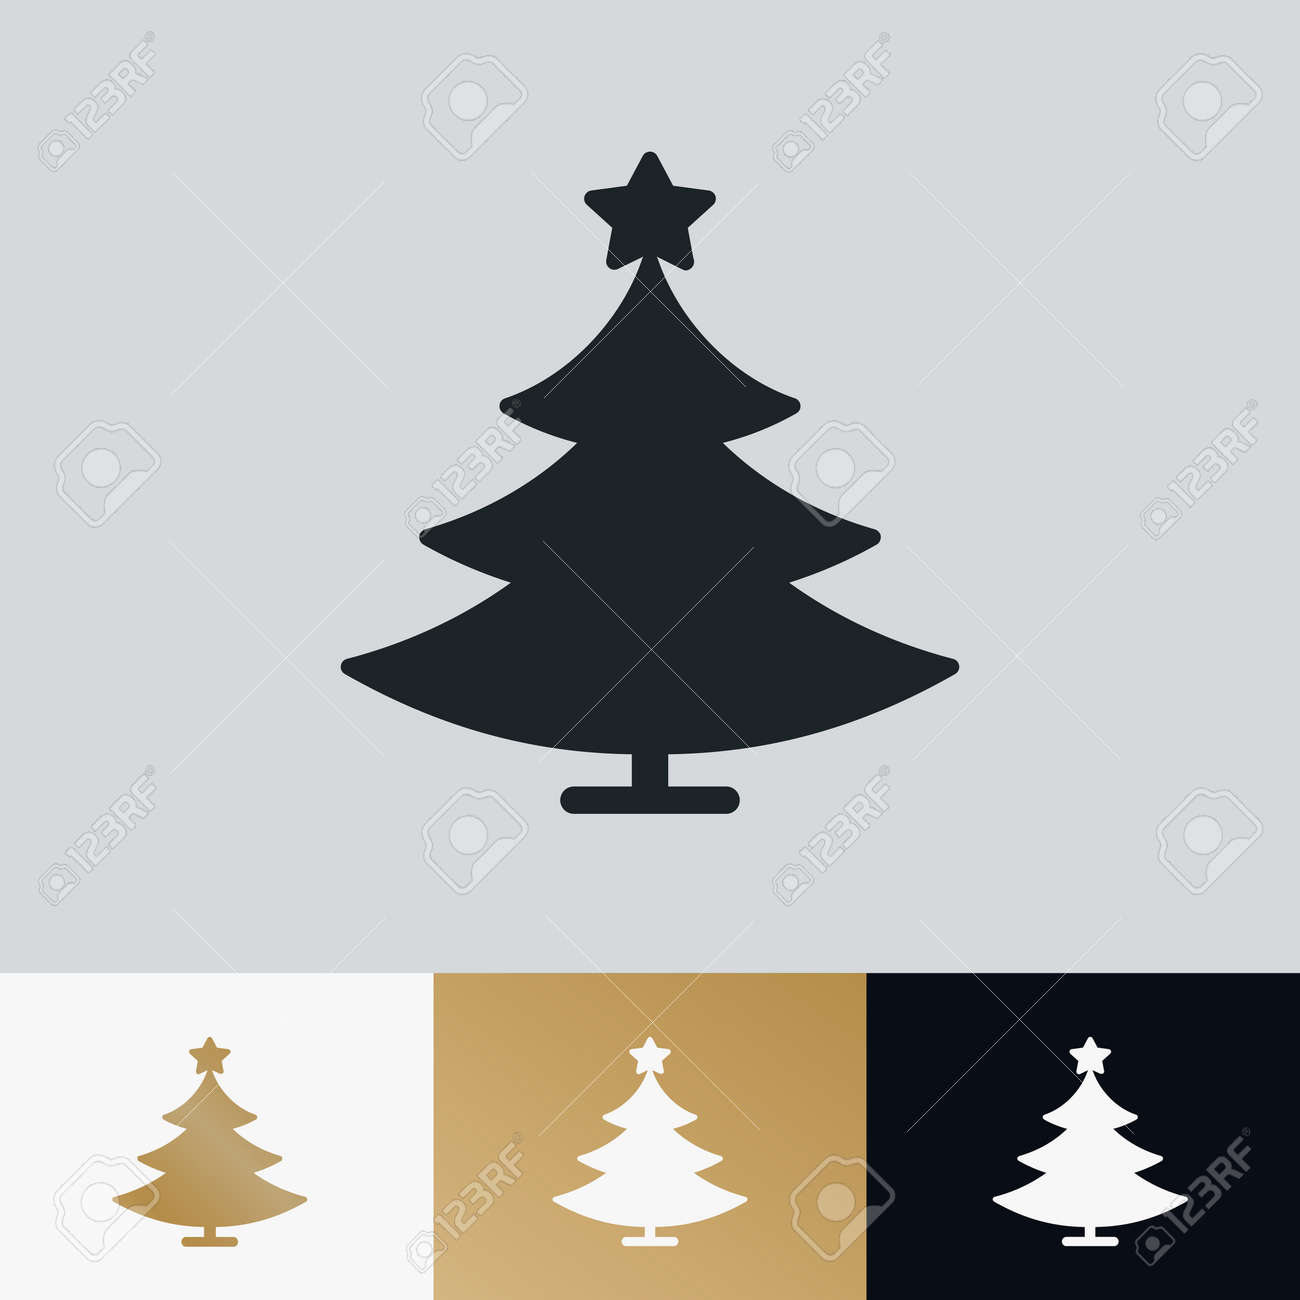 Christmas Card Printing.Christmas Tree Icon Set Isolated On Background For Greeting Card